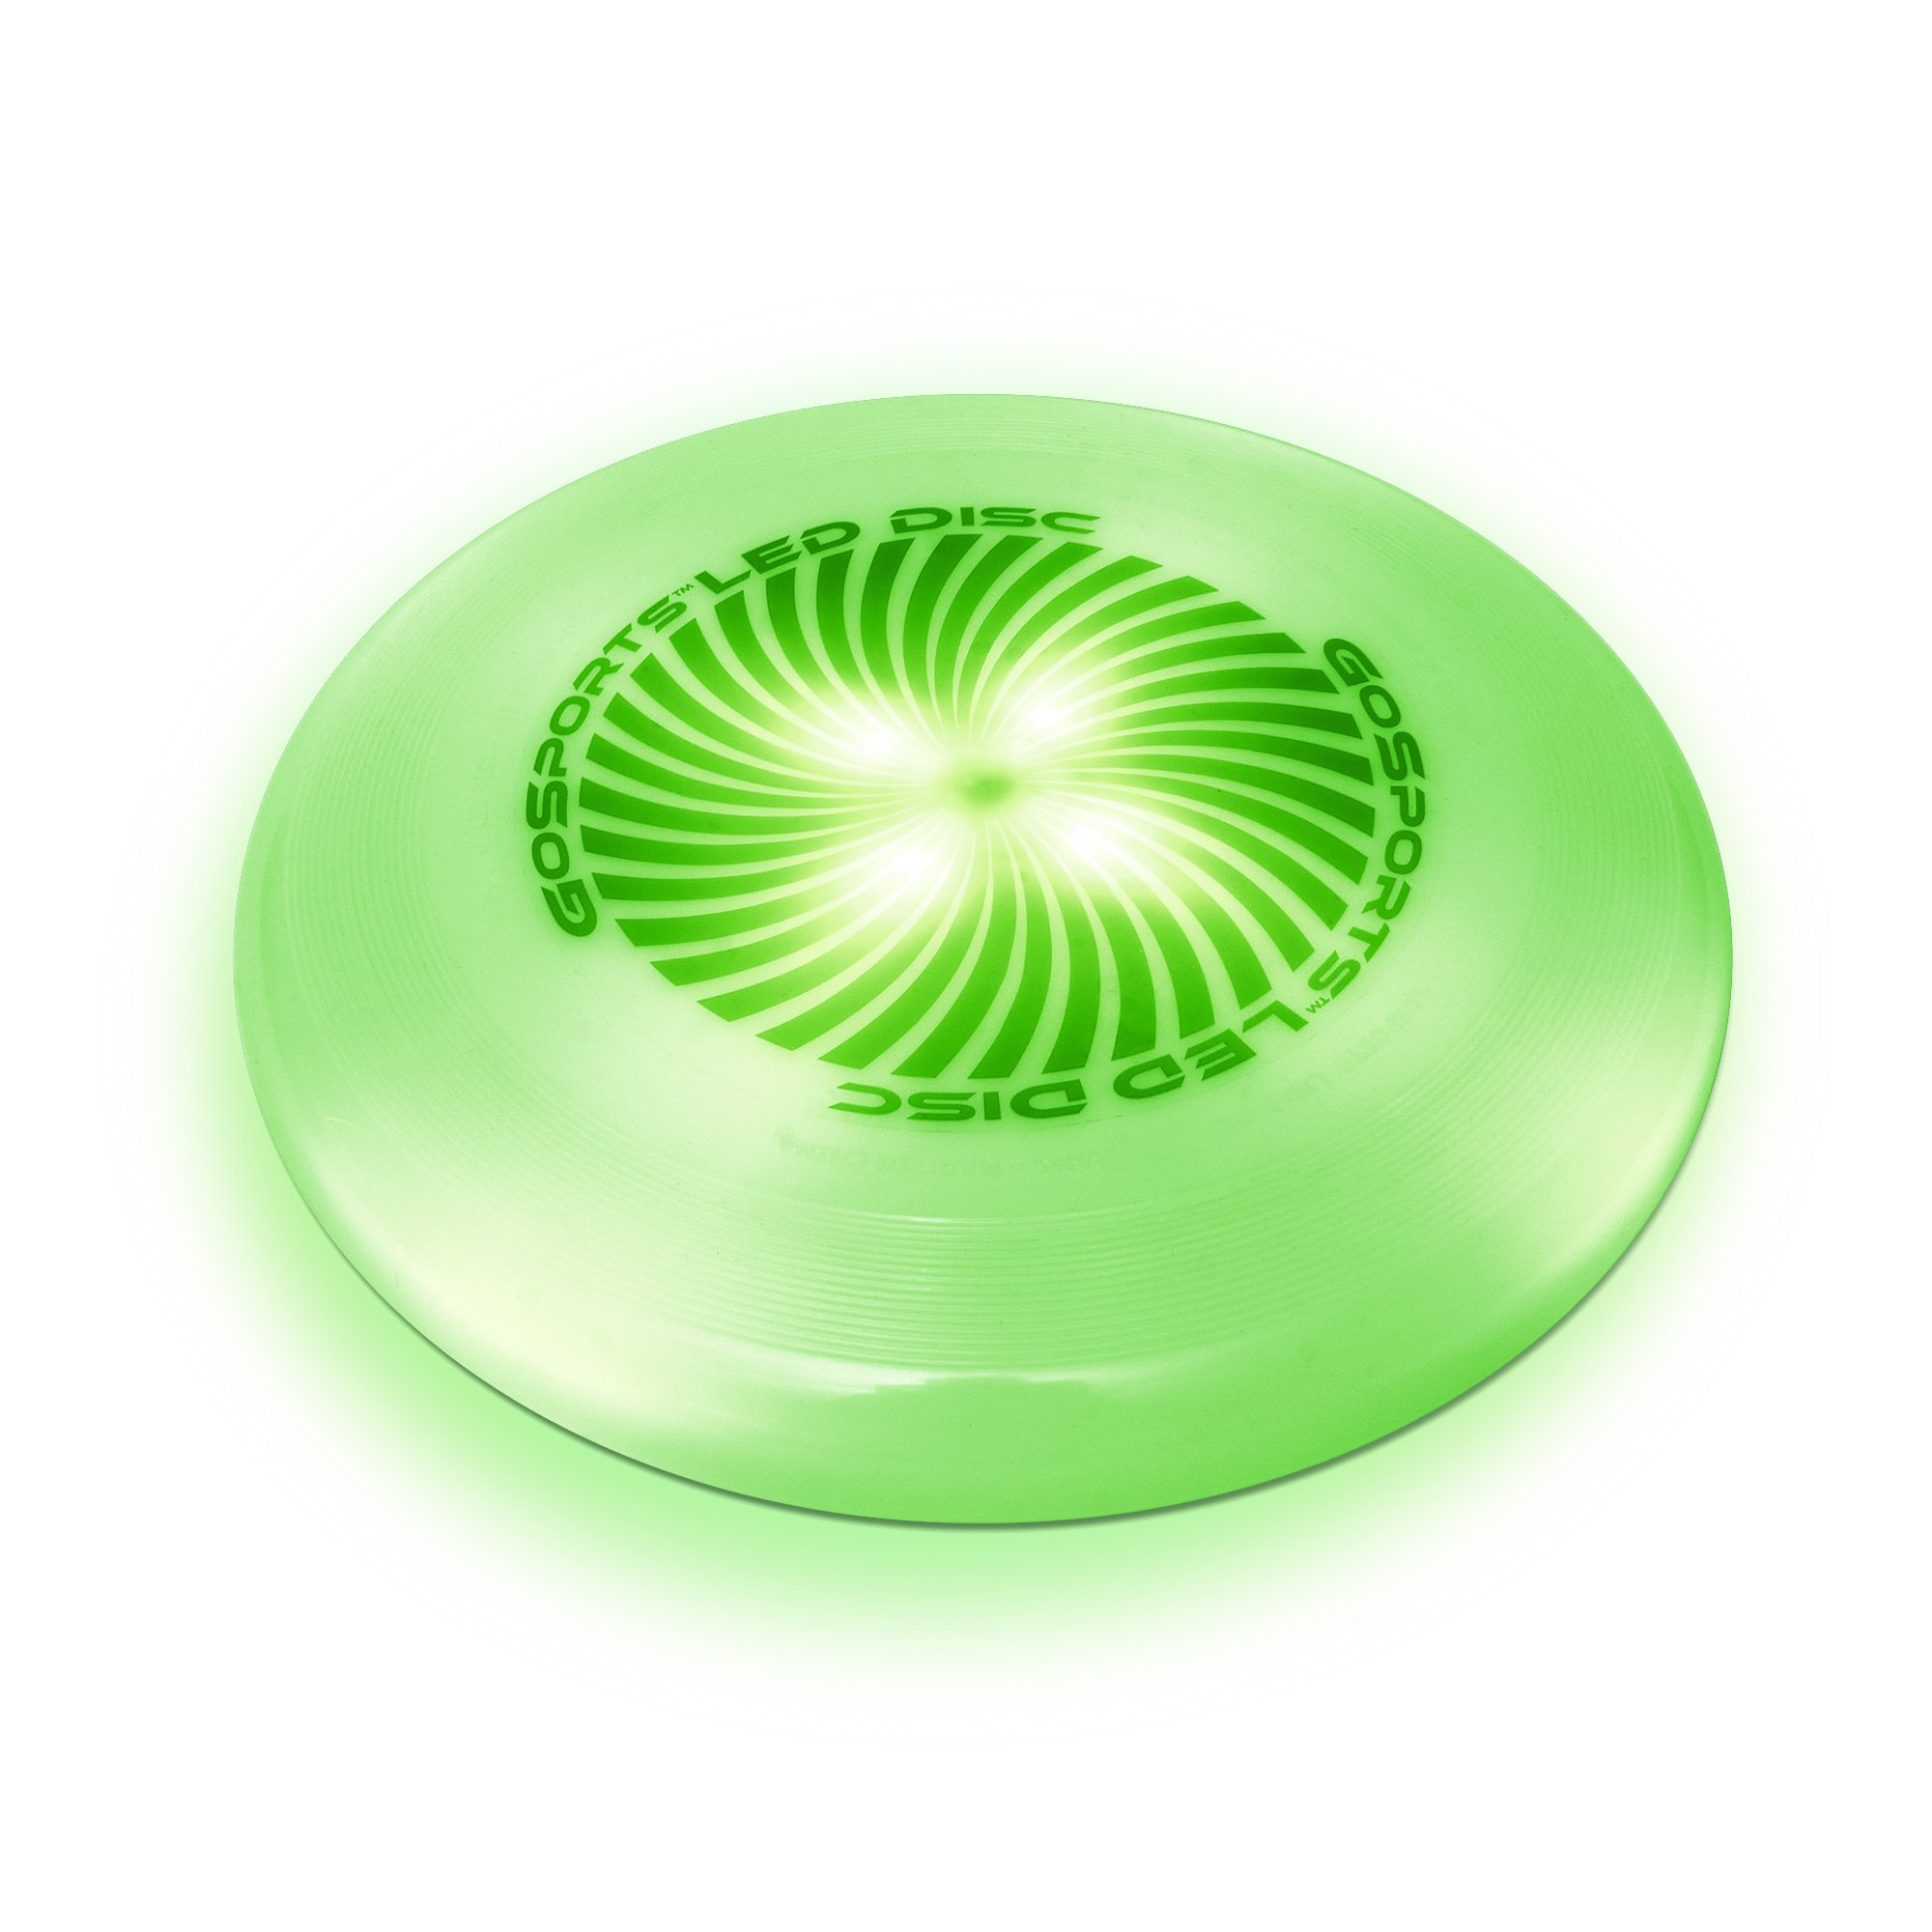 GoSports LED Flying Disc, 175 grams, with 4 LEDs, Green by GoSports